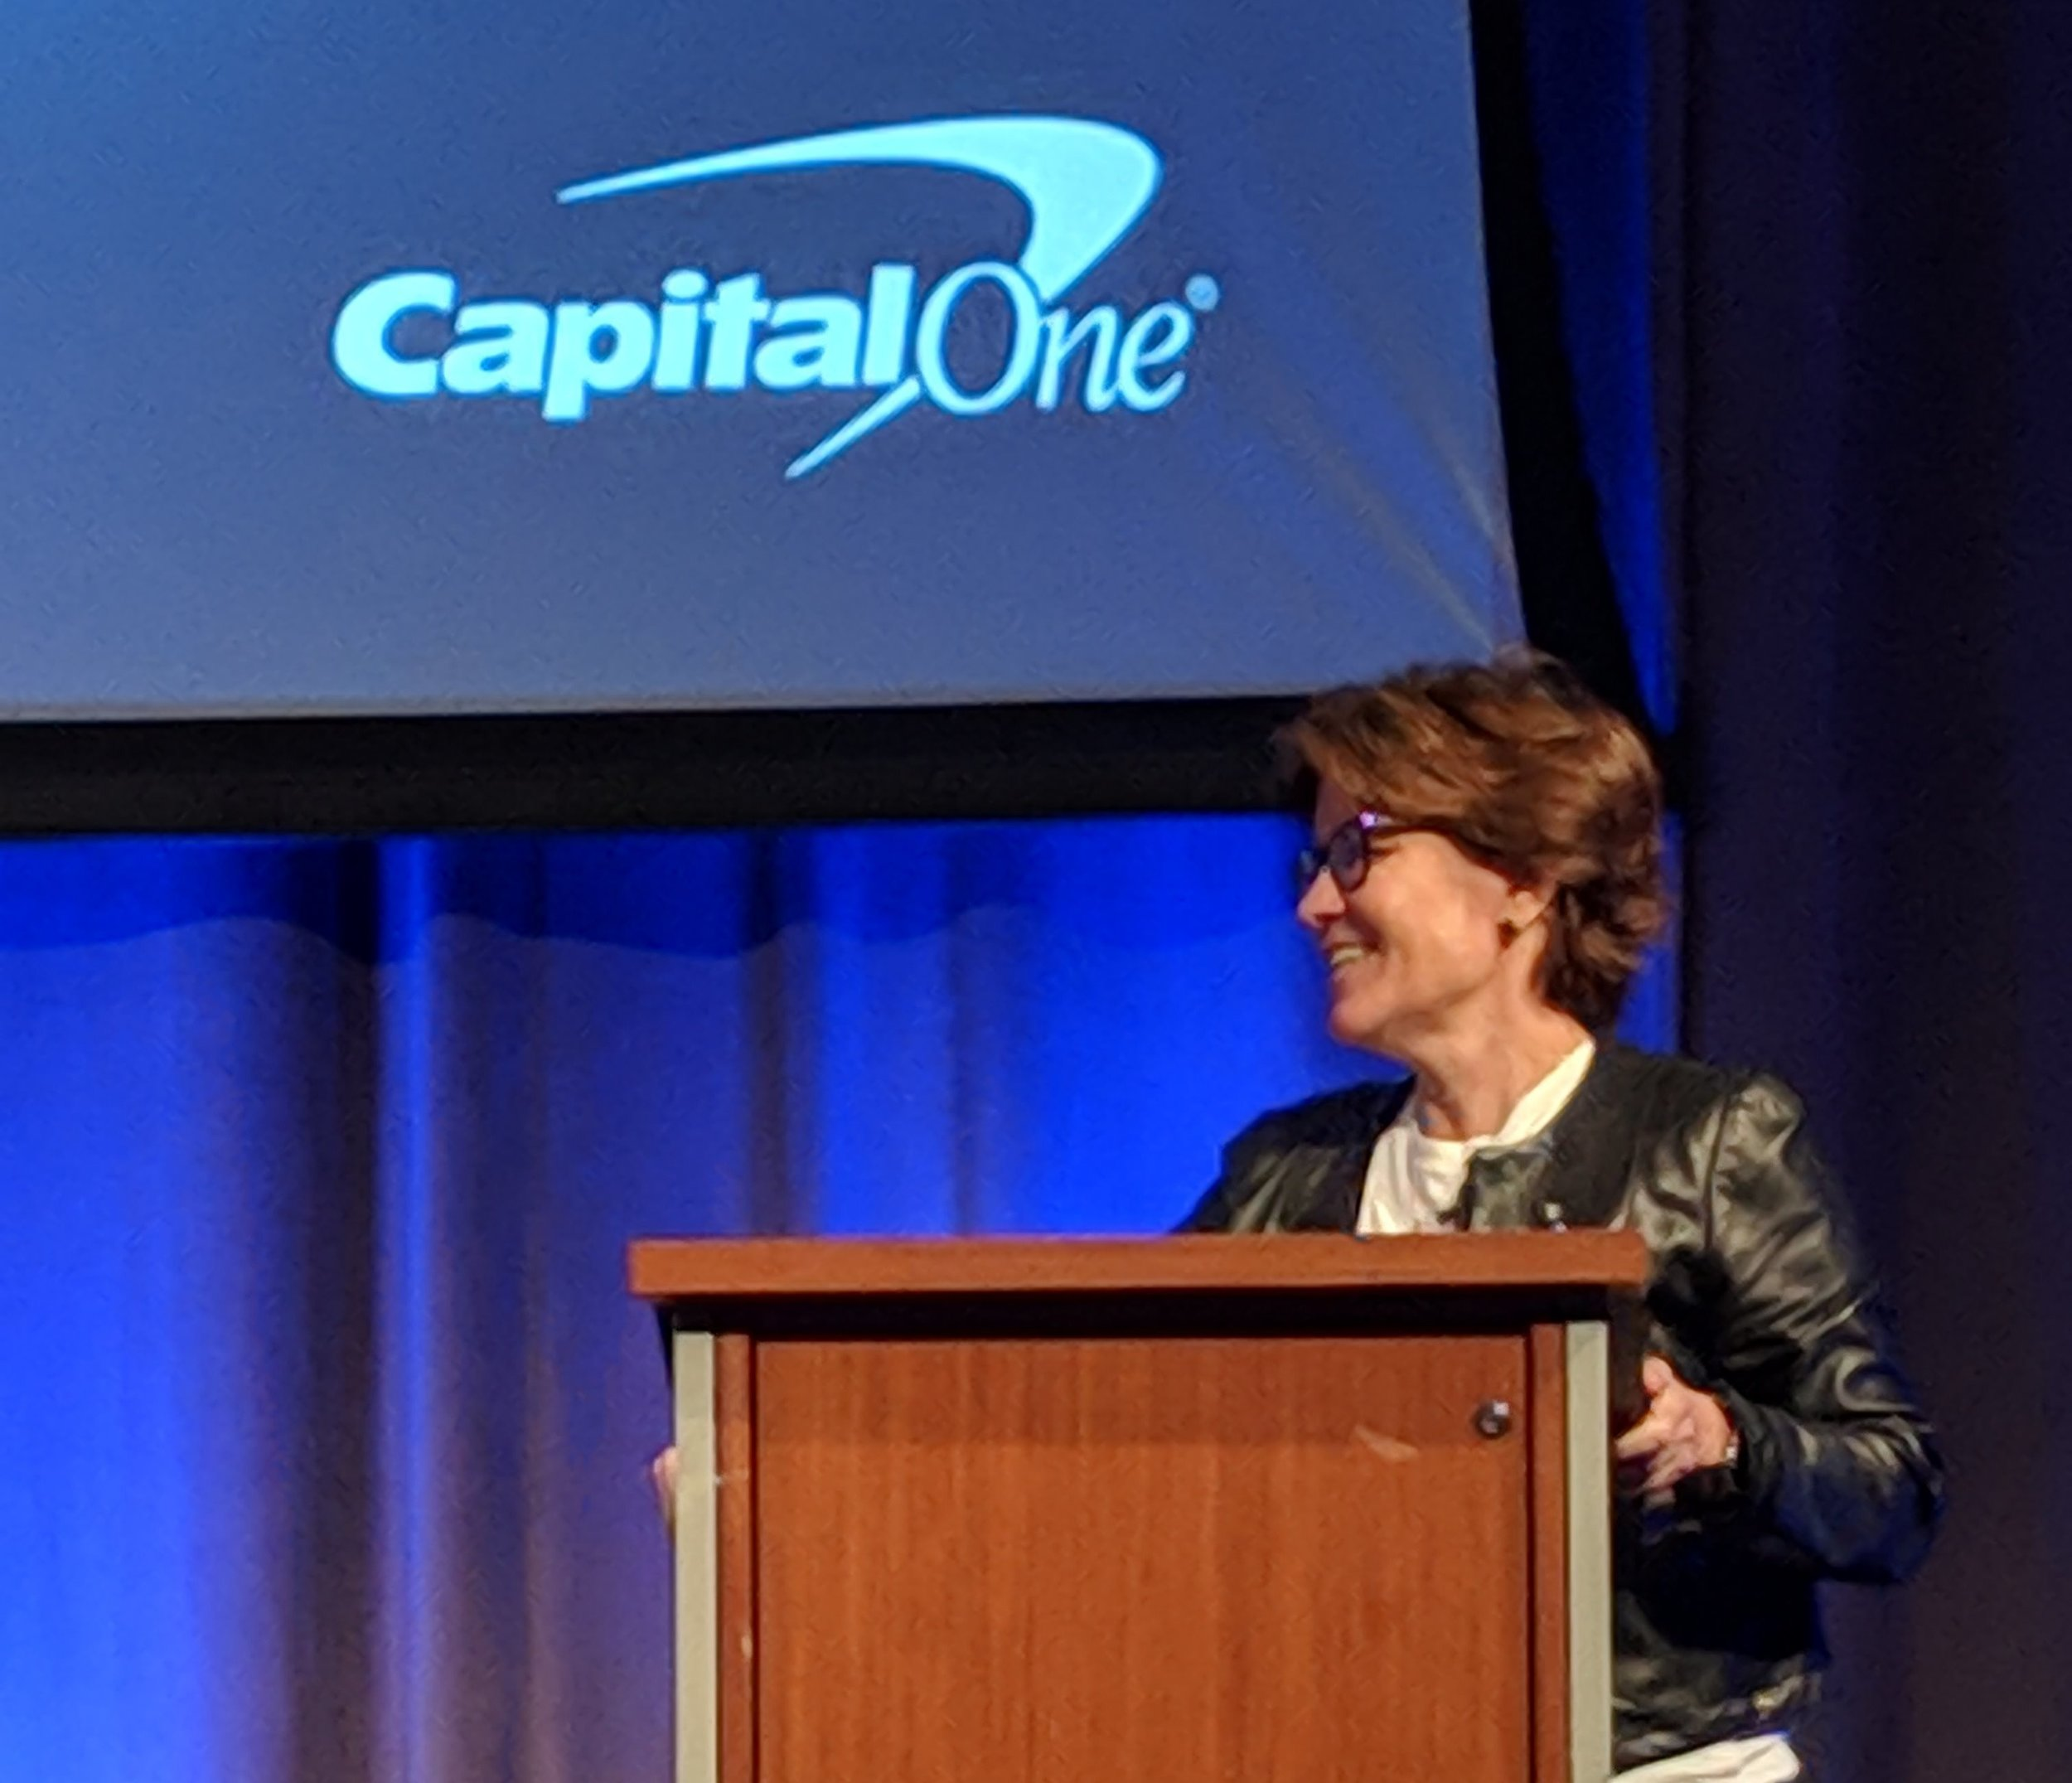 Kara Swisher at the first annual Corporate Startup Innovation Summit at the Capital One Conference Center in Plano, Texas.